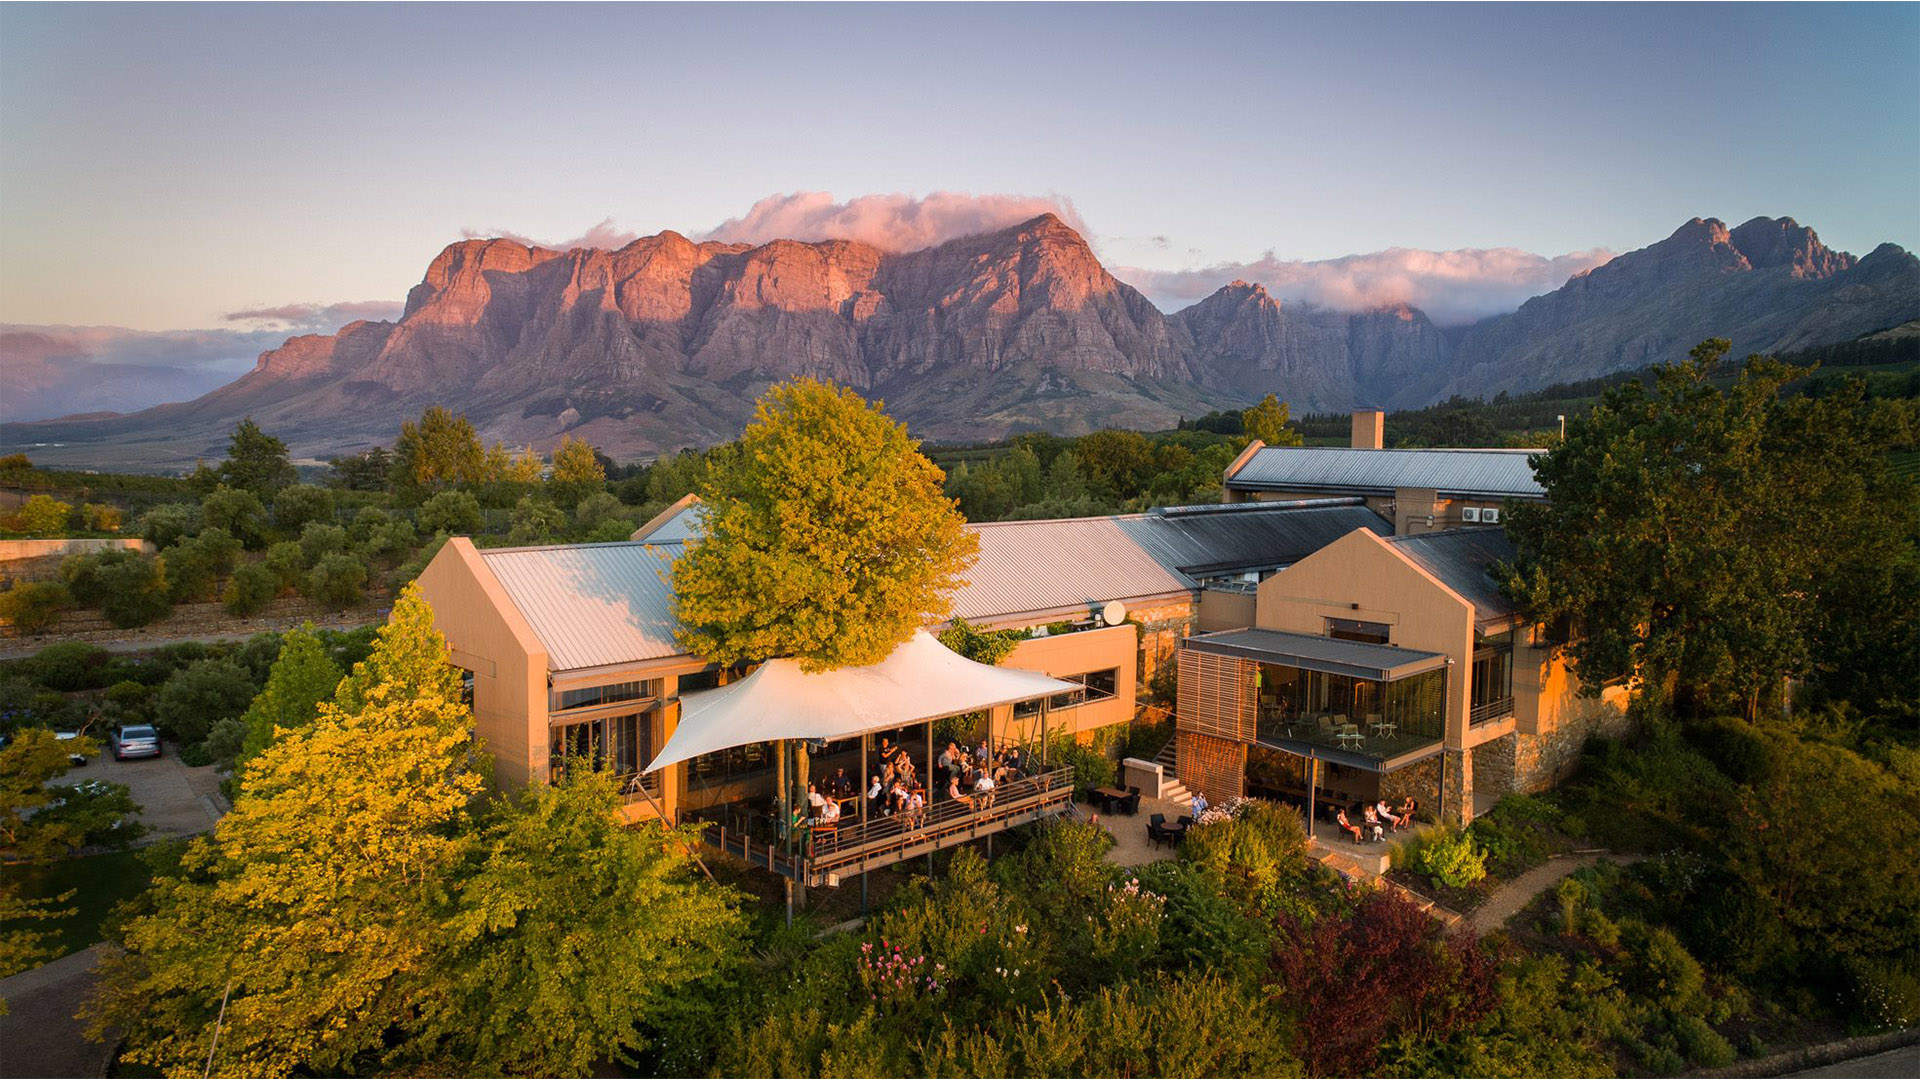 Our favourite restaurants in the Winelands